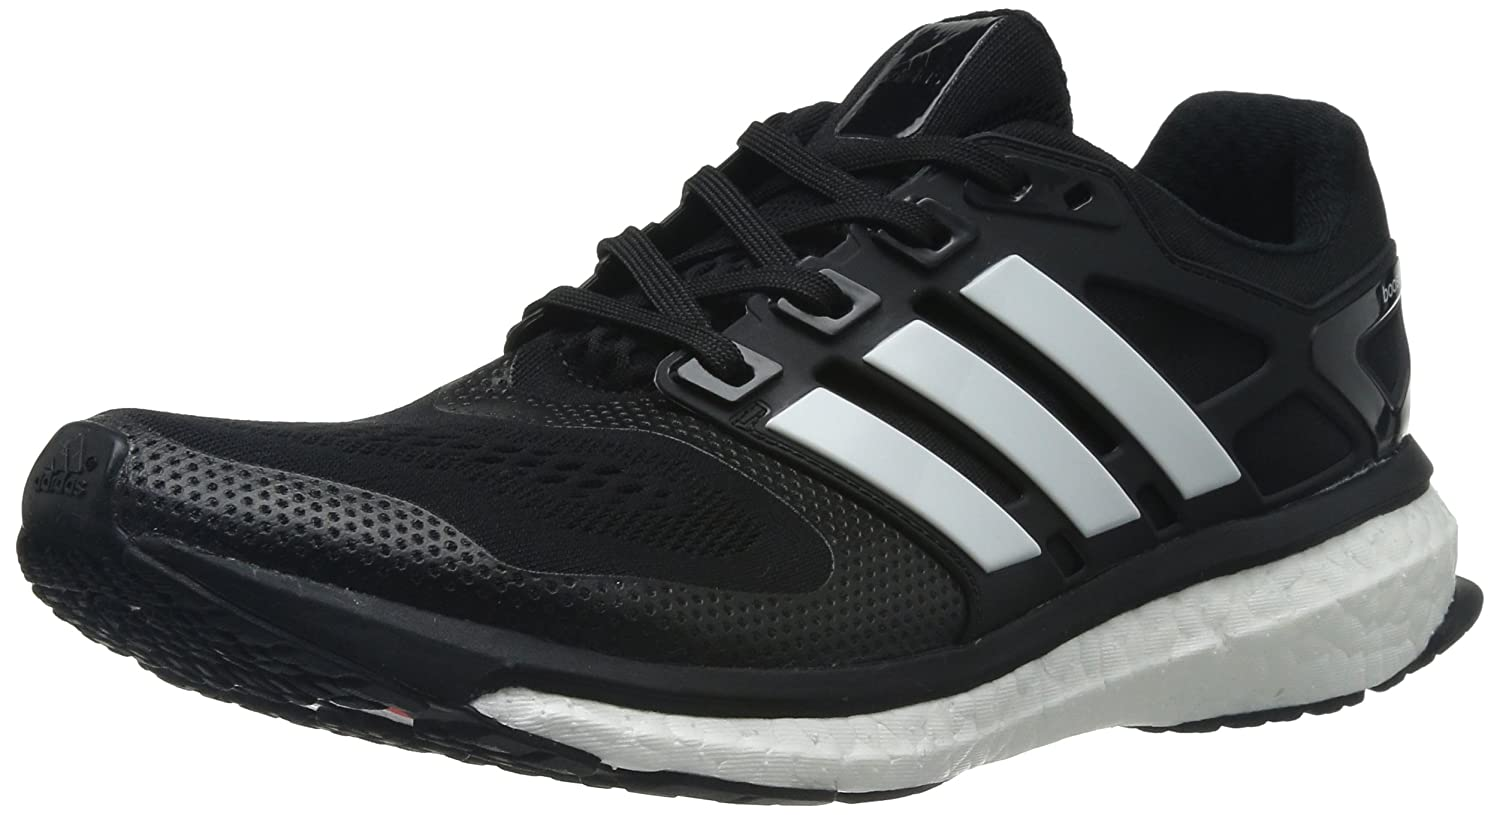 370a5c50719a5 adidas Women s Energy Boost 2 ESM Trainers Multicolour Size  11   Amazon.co.uk  Shoes   Bags